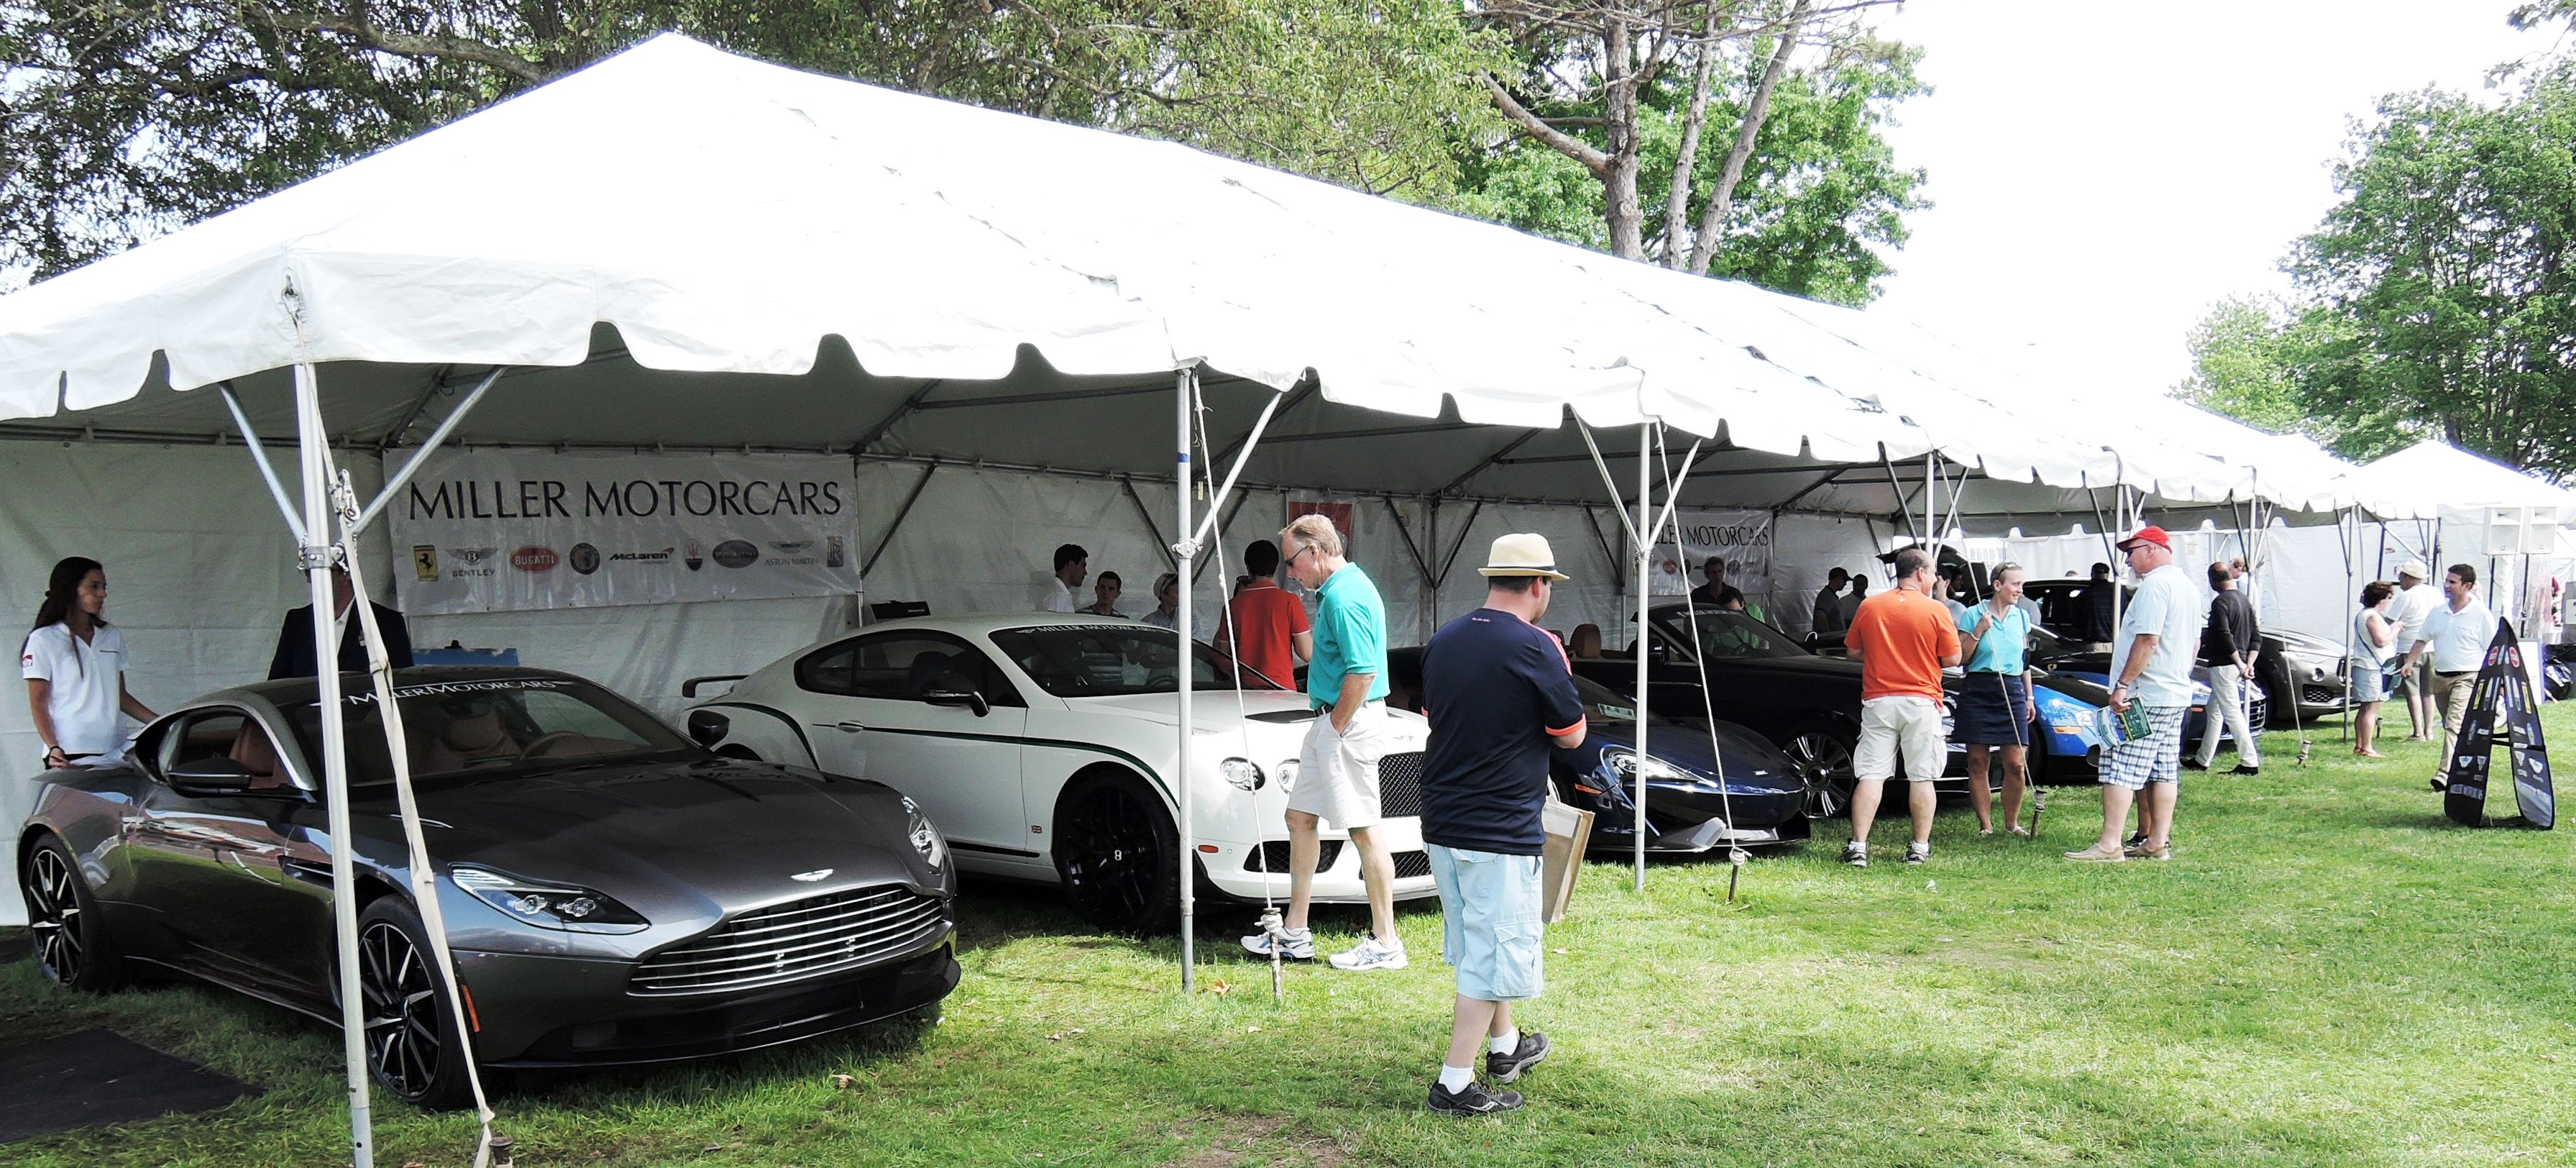 Greenwich concours d'elegance- miller motorcars